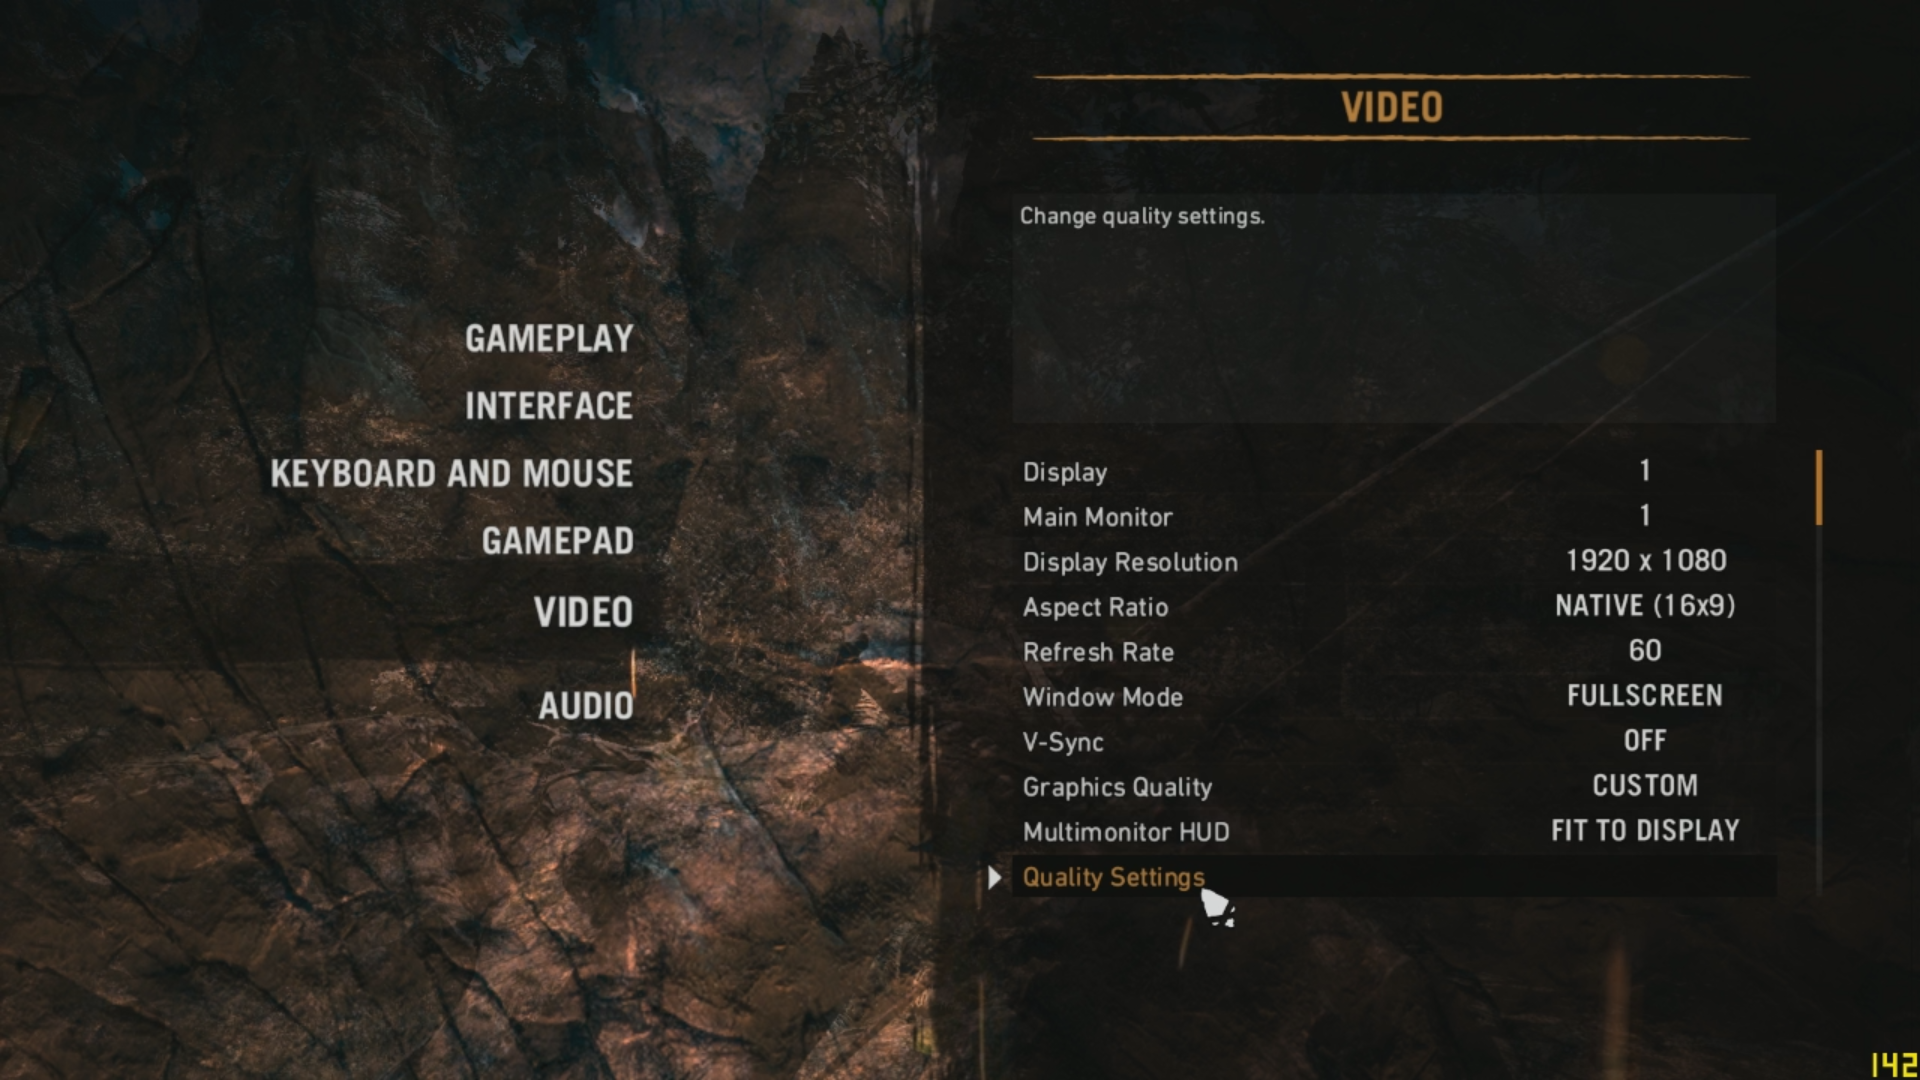 Far Cry Primal Pc Video Settings Revealed Game Runs At 75 90 Fps